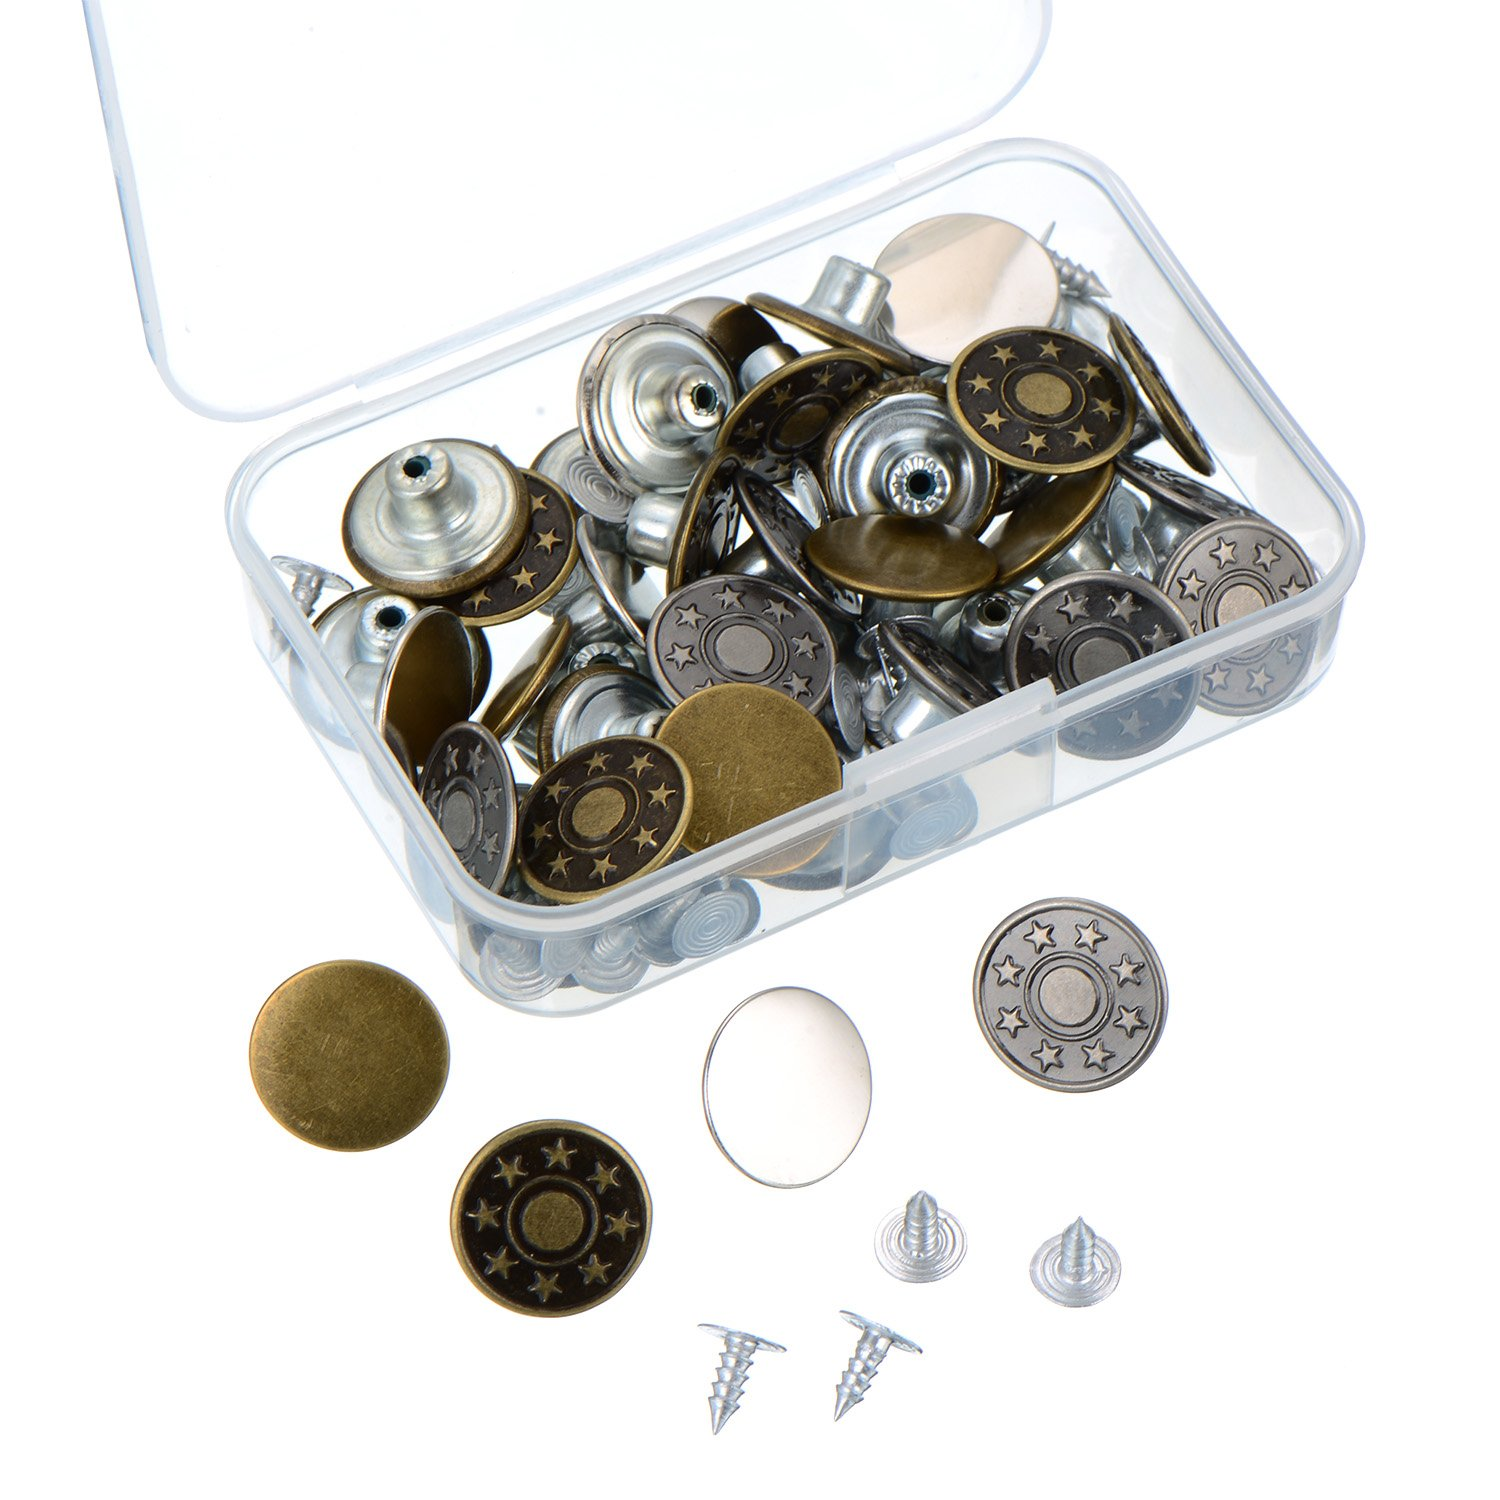 40 Sets Jeans Buttons Metal Tack Button Snap Button for Jeans with Storage Box, 2 Patterns, Bronze and Silver Color Outus